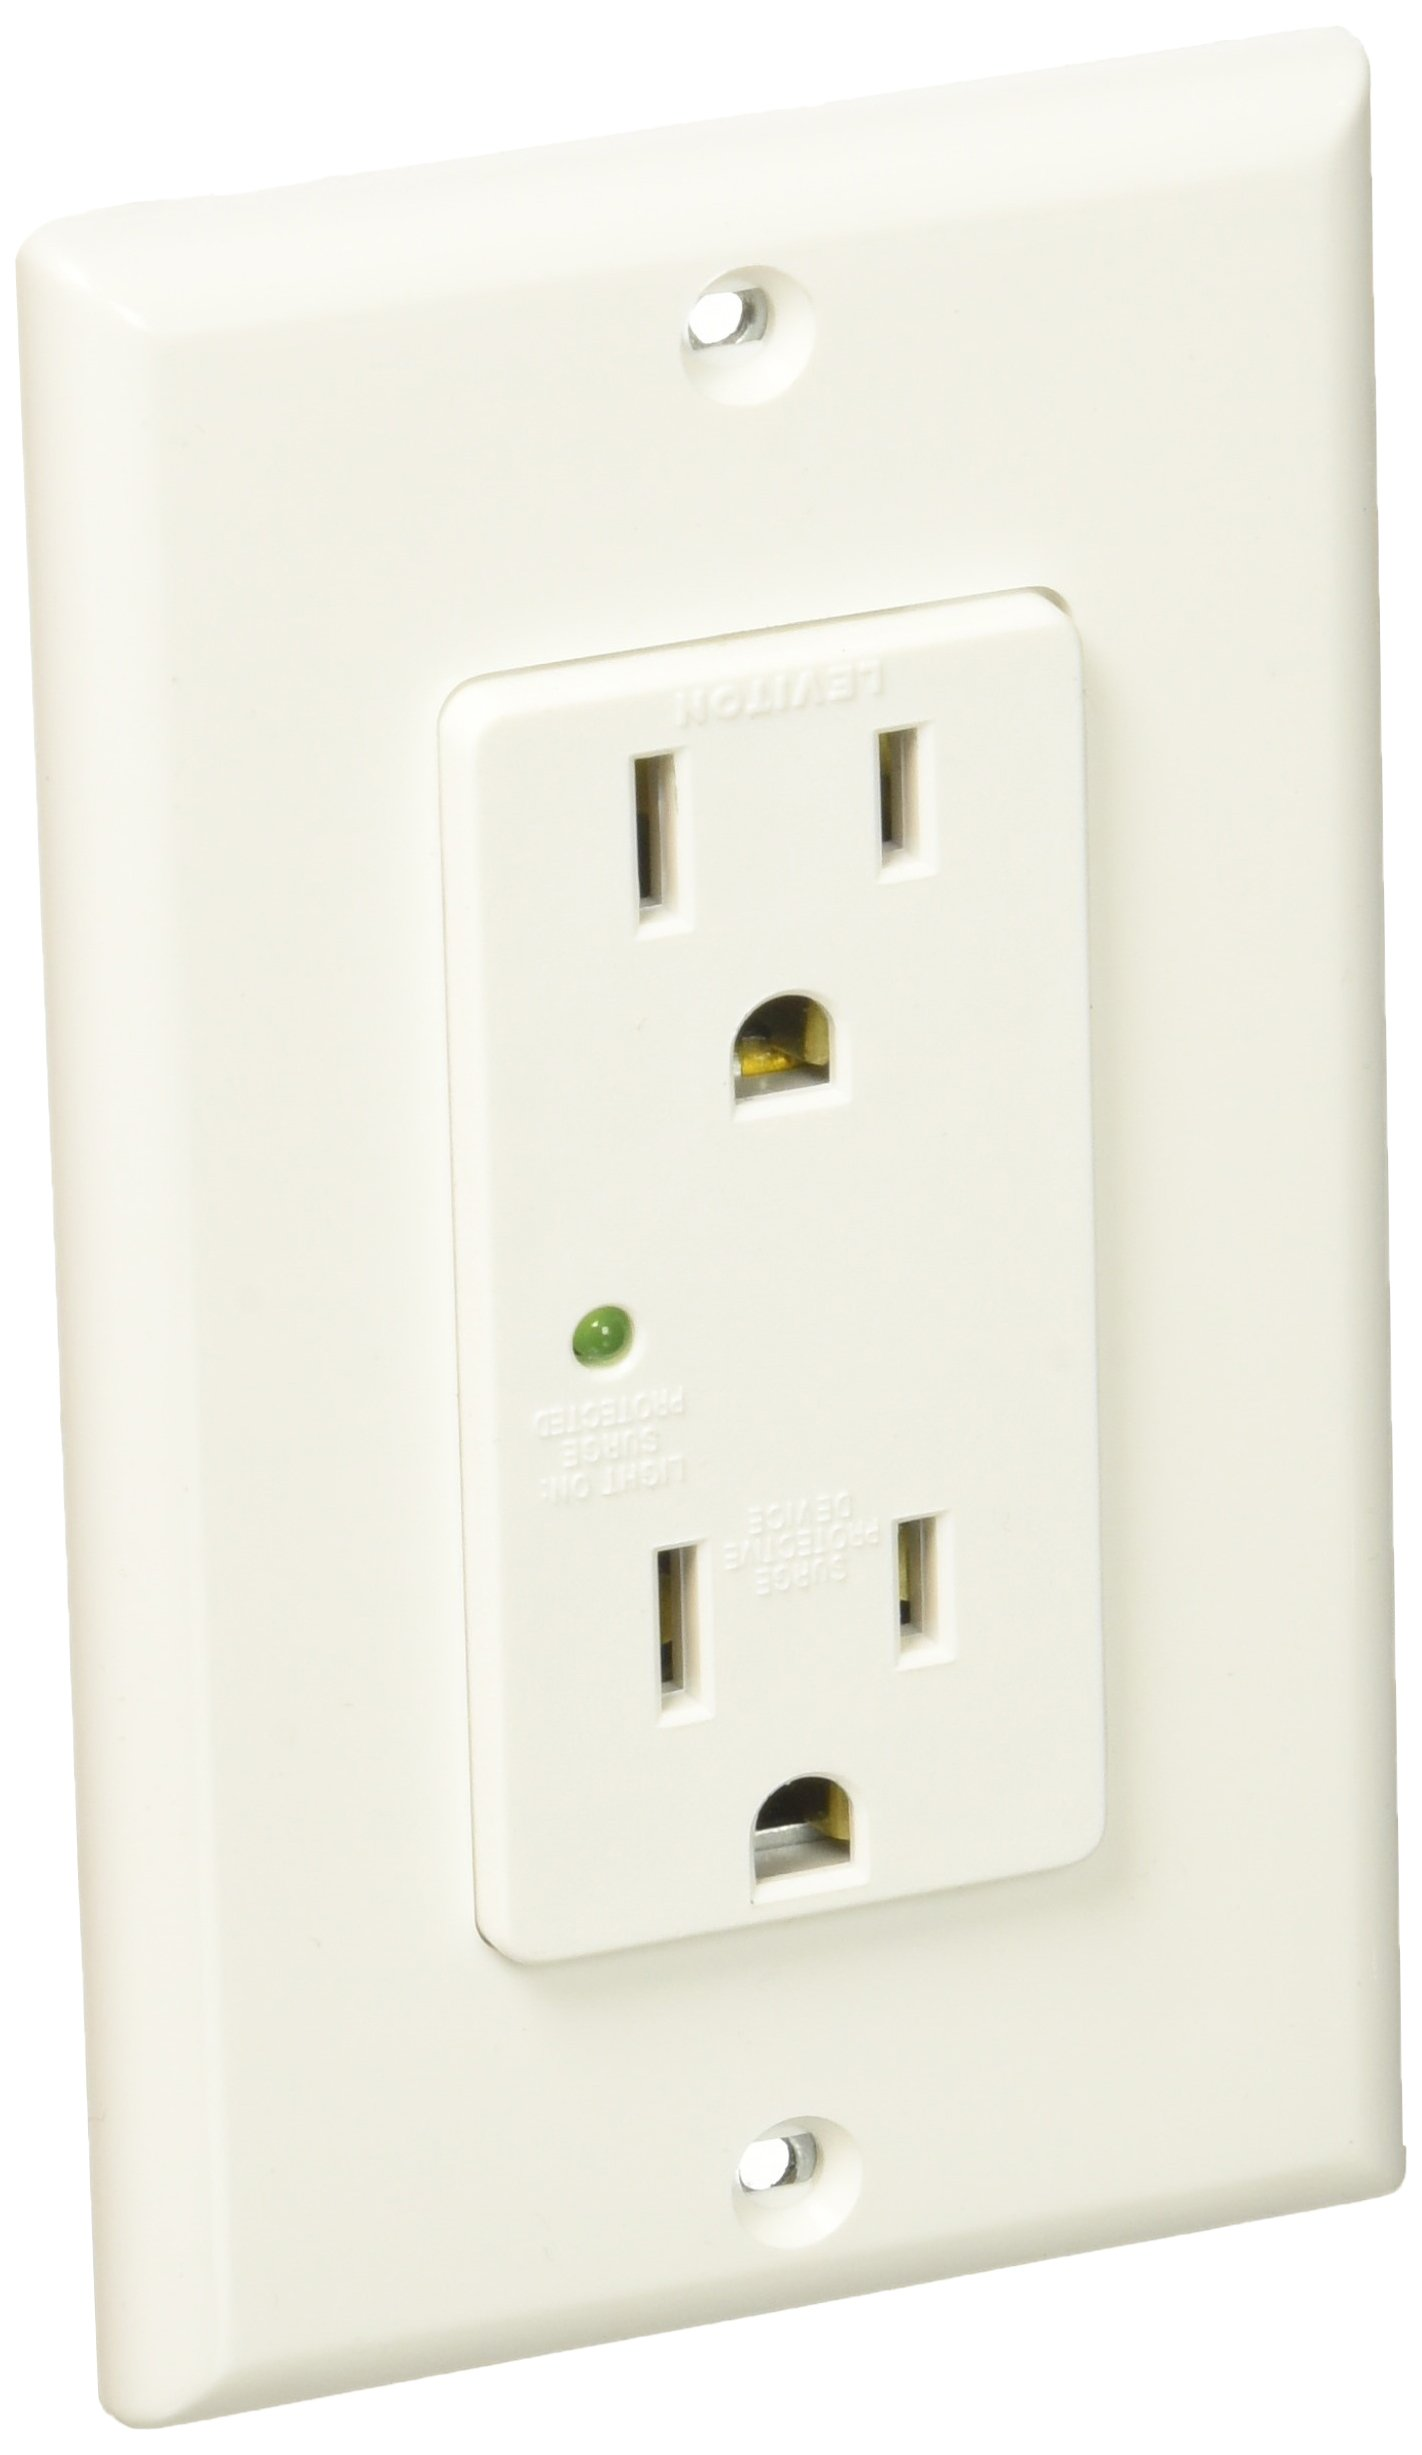 Leviton 5280-W 15 Amp, 125V, Decora Plus Duplex Surge Suppressor Receptacle, Straight Blade, Industrial Grade, Self Grounding, 10-Pack, White